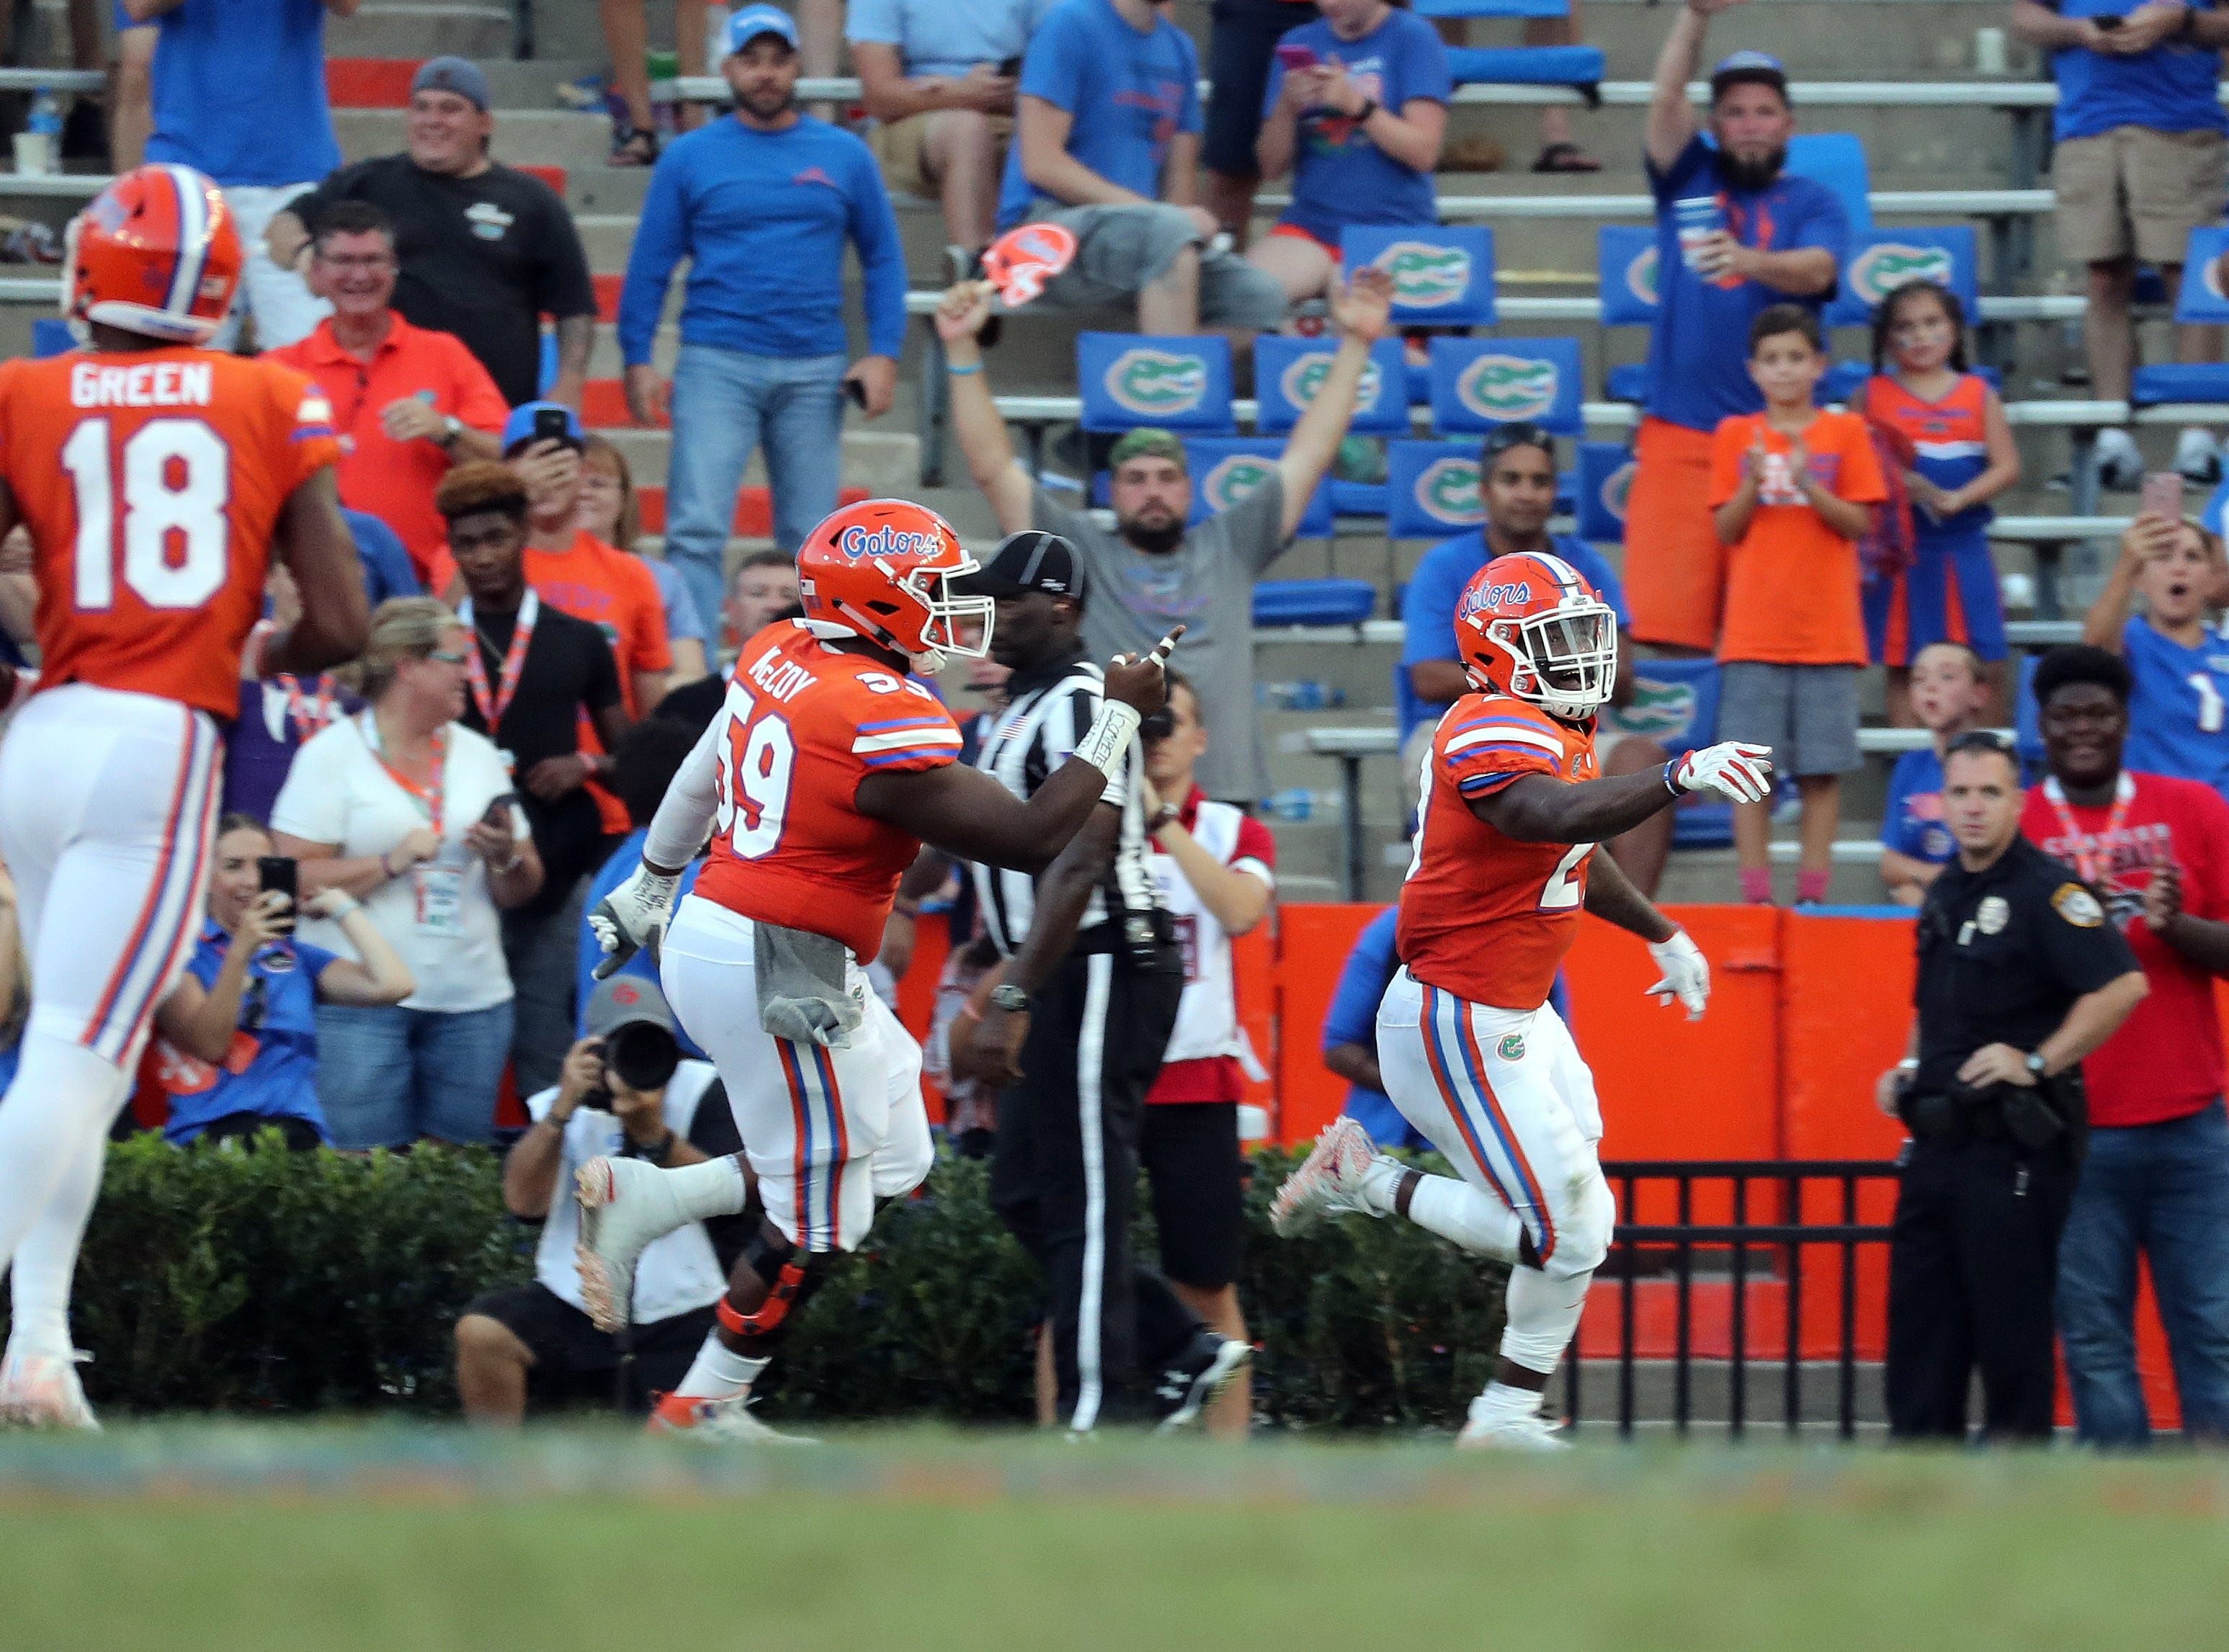 Sep 15, 2018; Gainesville, FL, USA; Florida Gators running back Dameon Pierce (27)  is congratulated after scoring a touchdown against the Colorado State Rams during the second half at Ben Hill Griffin Stadium. Mandatory Credit: Kim Klement-USA TODAY Sports